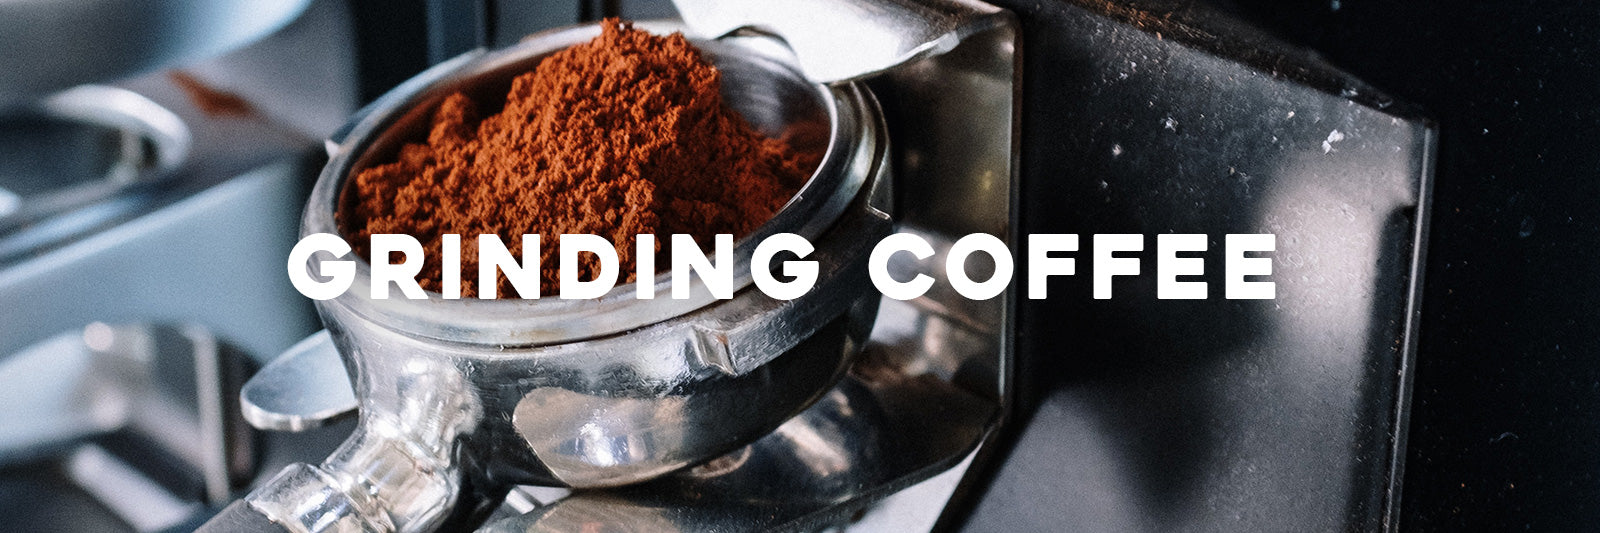 Cauz Coffee Grinding At Home or Pre-Ground